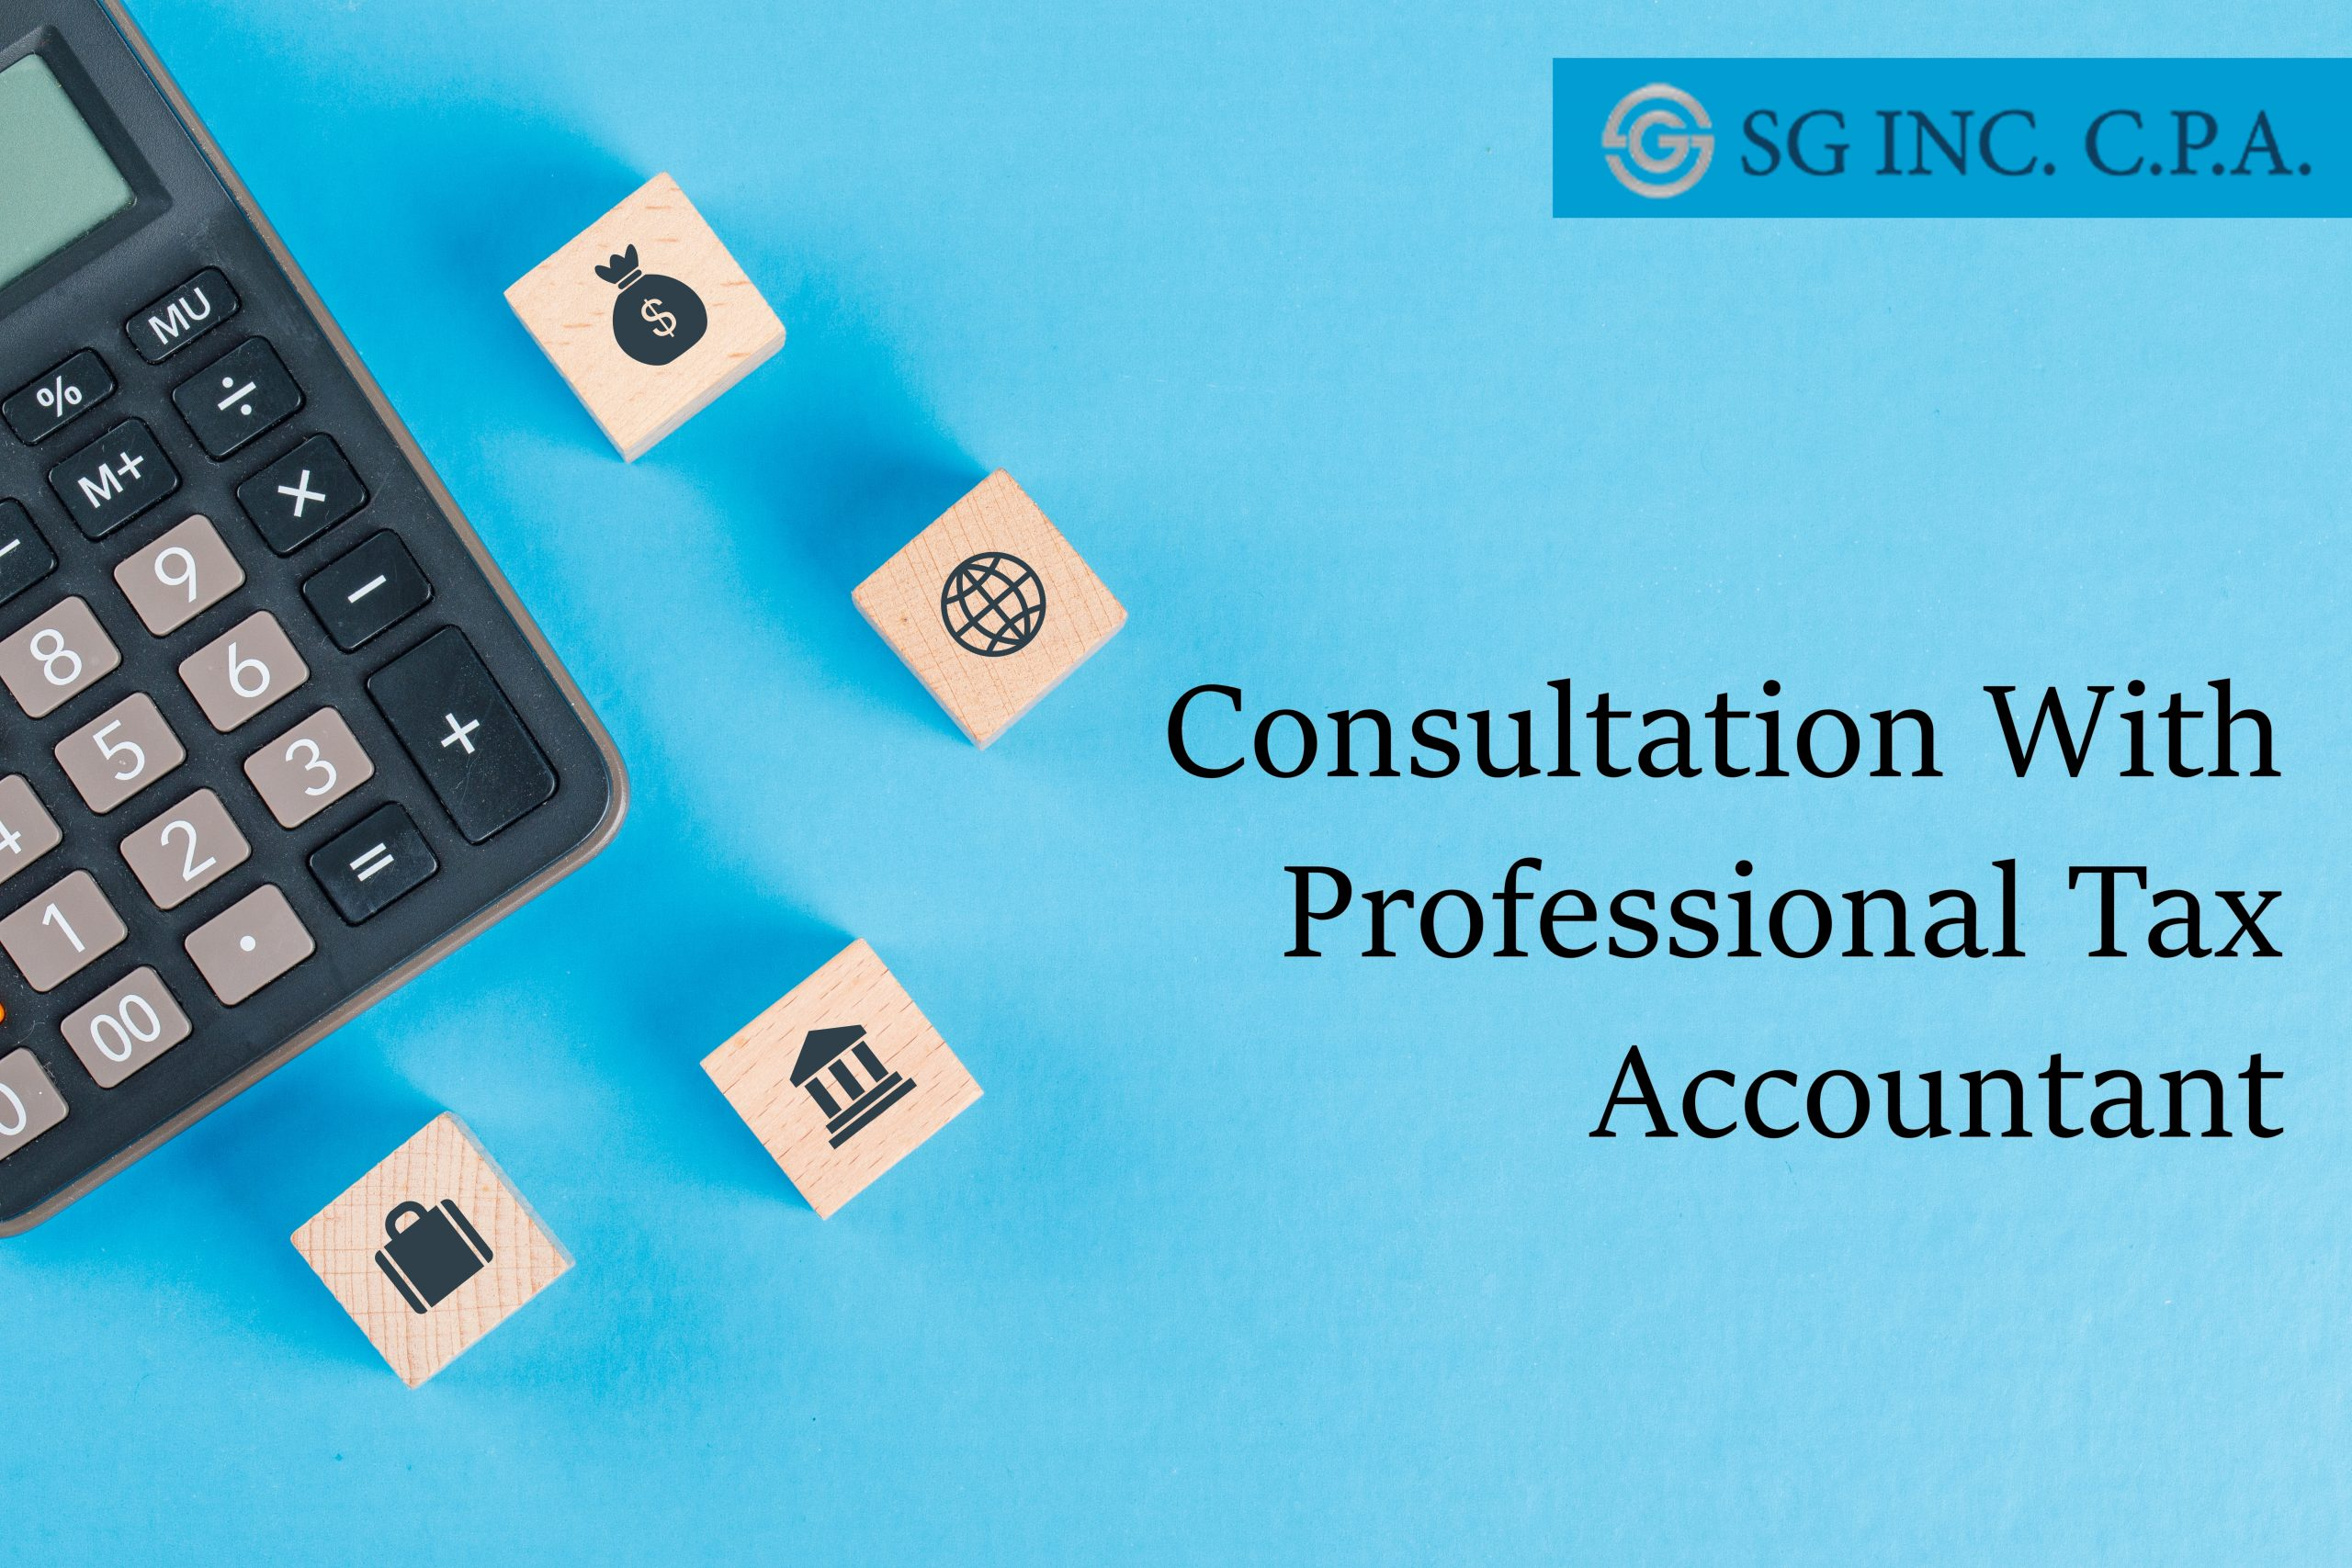 Advantages-of-Consultation-with-a-Professional-Tax-Accountant-scaled.jpg